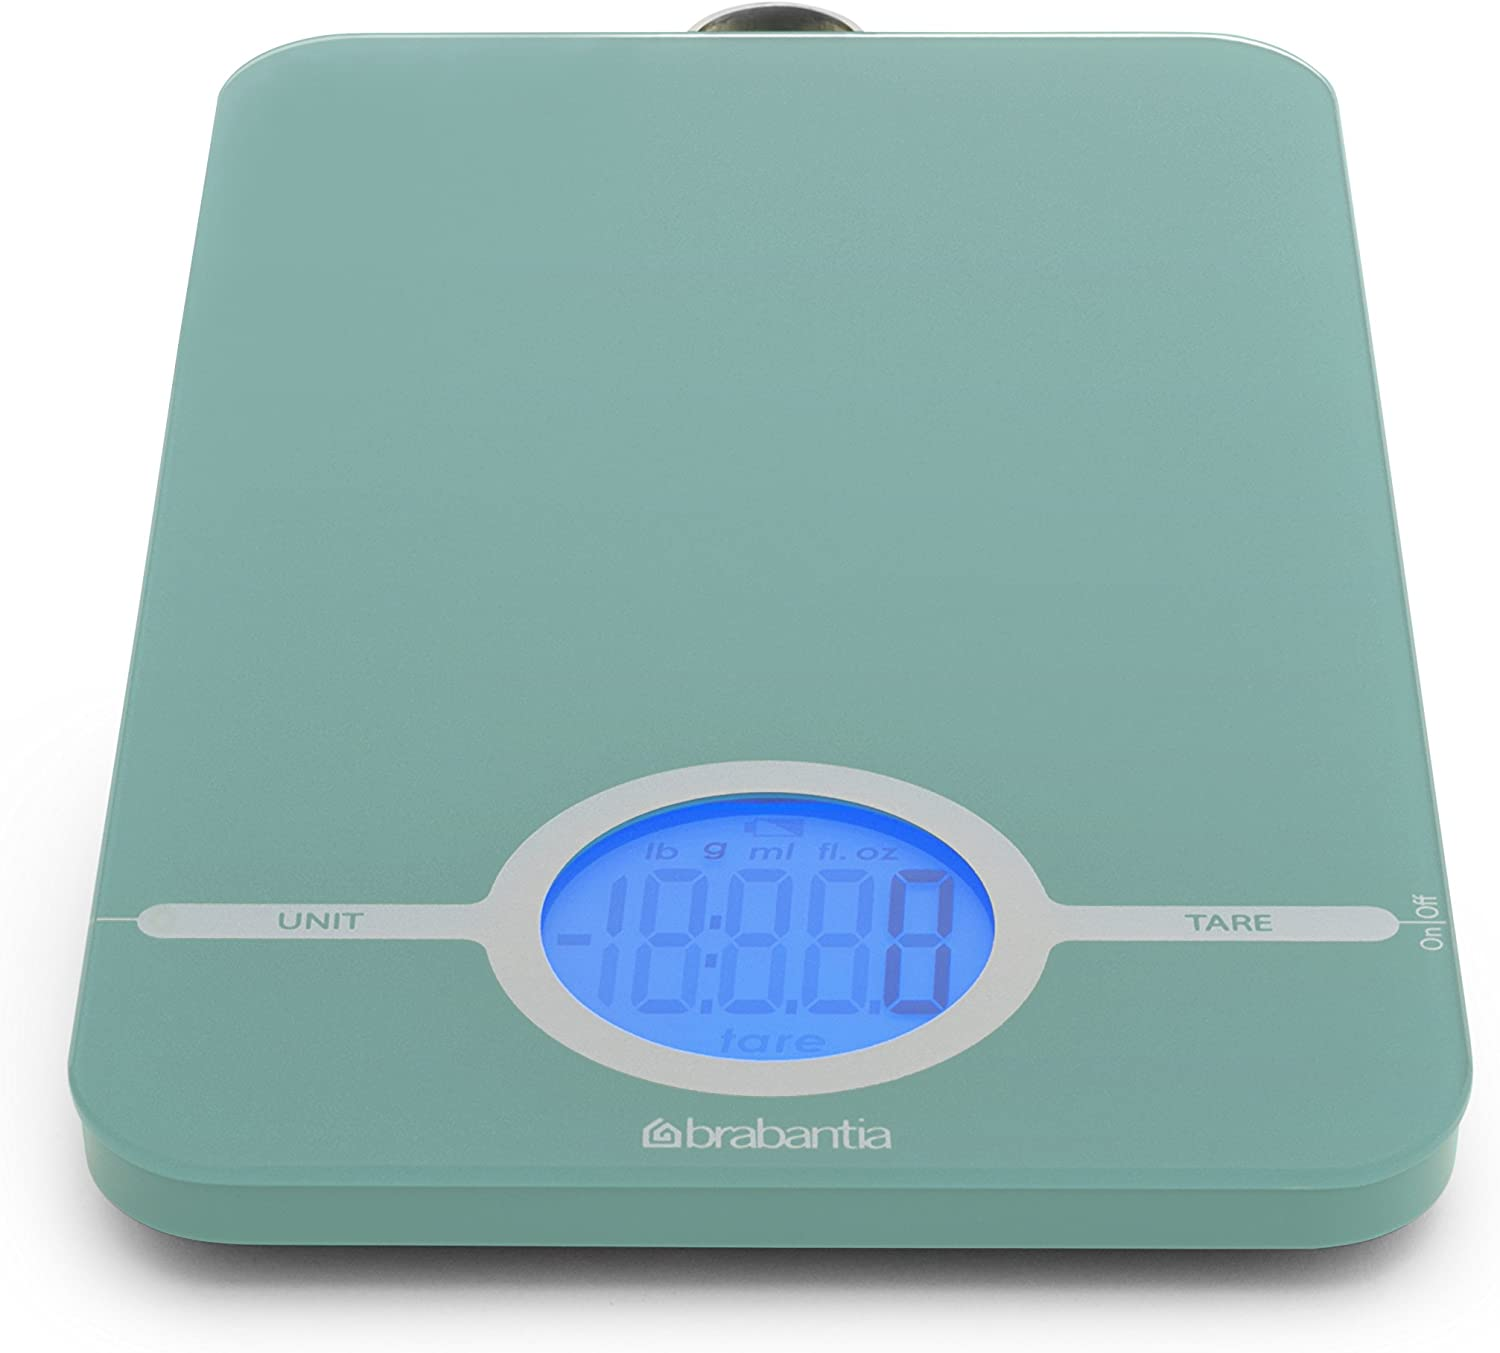 Brabantia Digital Kitchen Scales - Mint Green